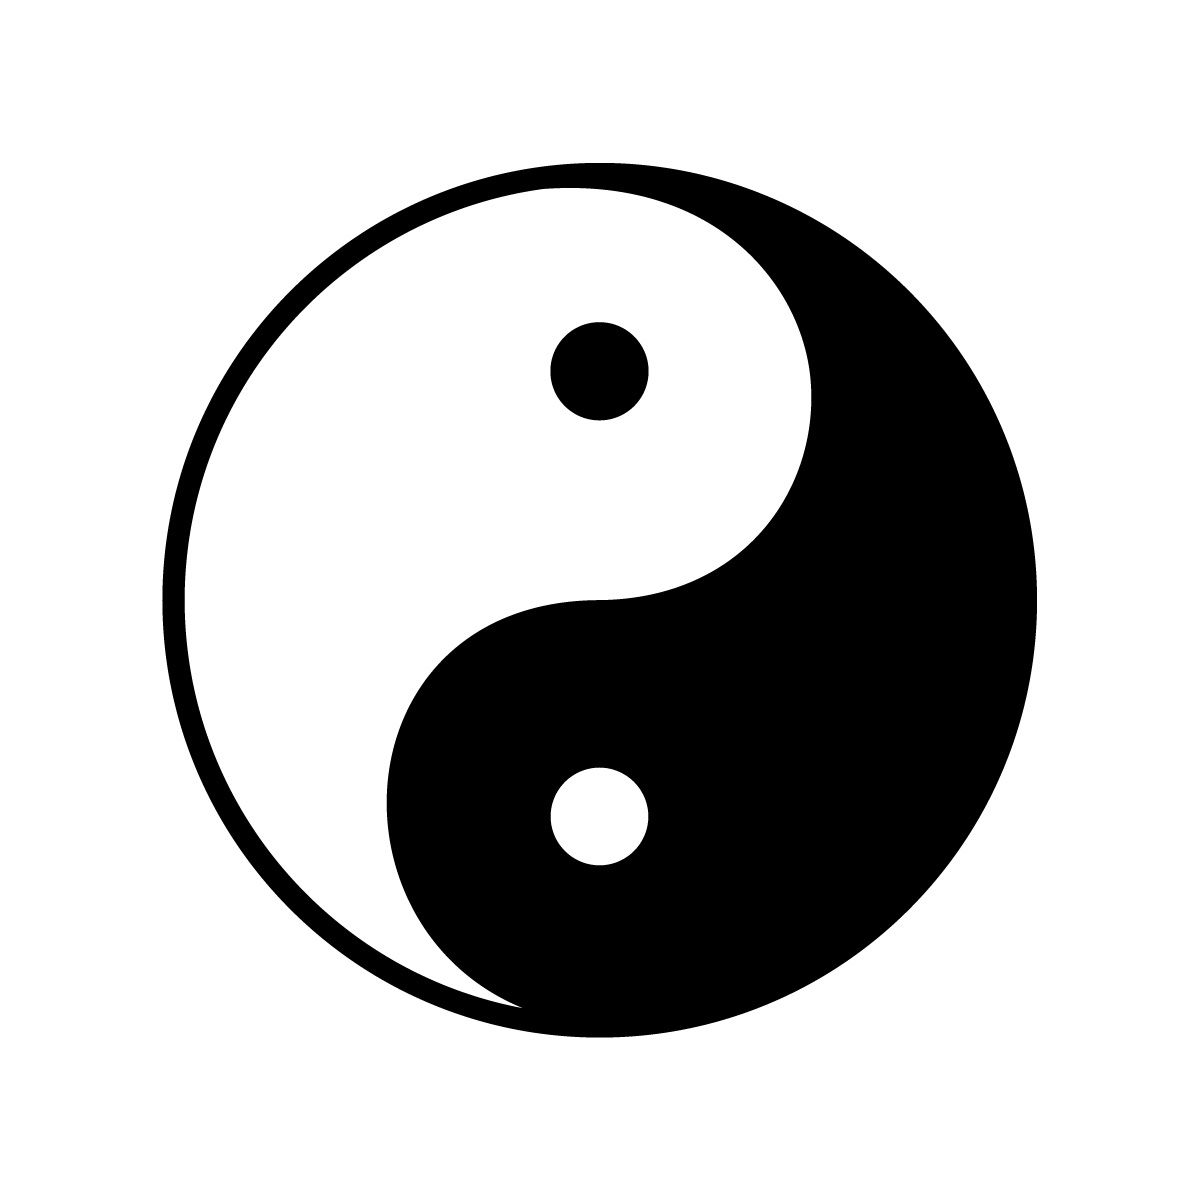 Jordan Peterson Explains The Yin Yang Symbol Logo Design Love In 2020 Yin Yang Logo Design Love Symbols